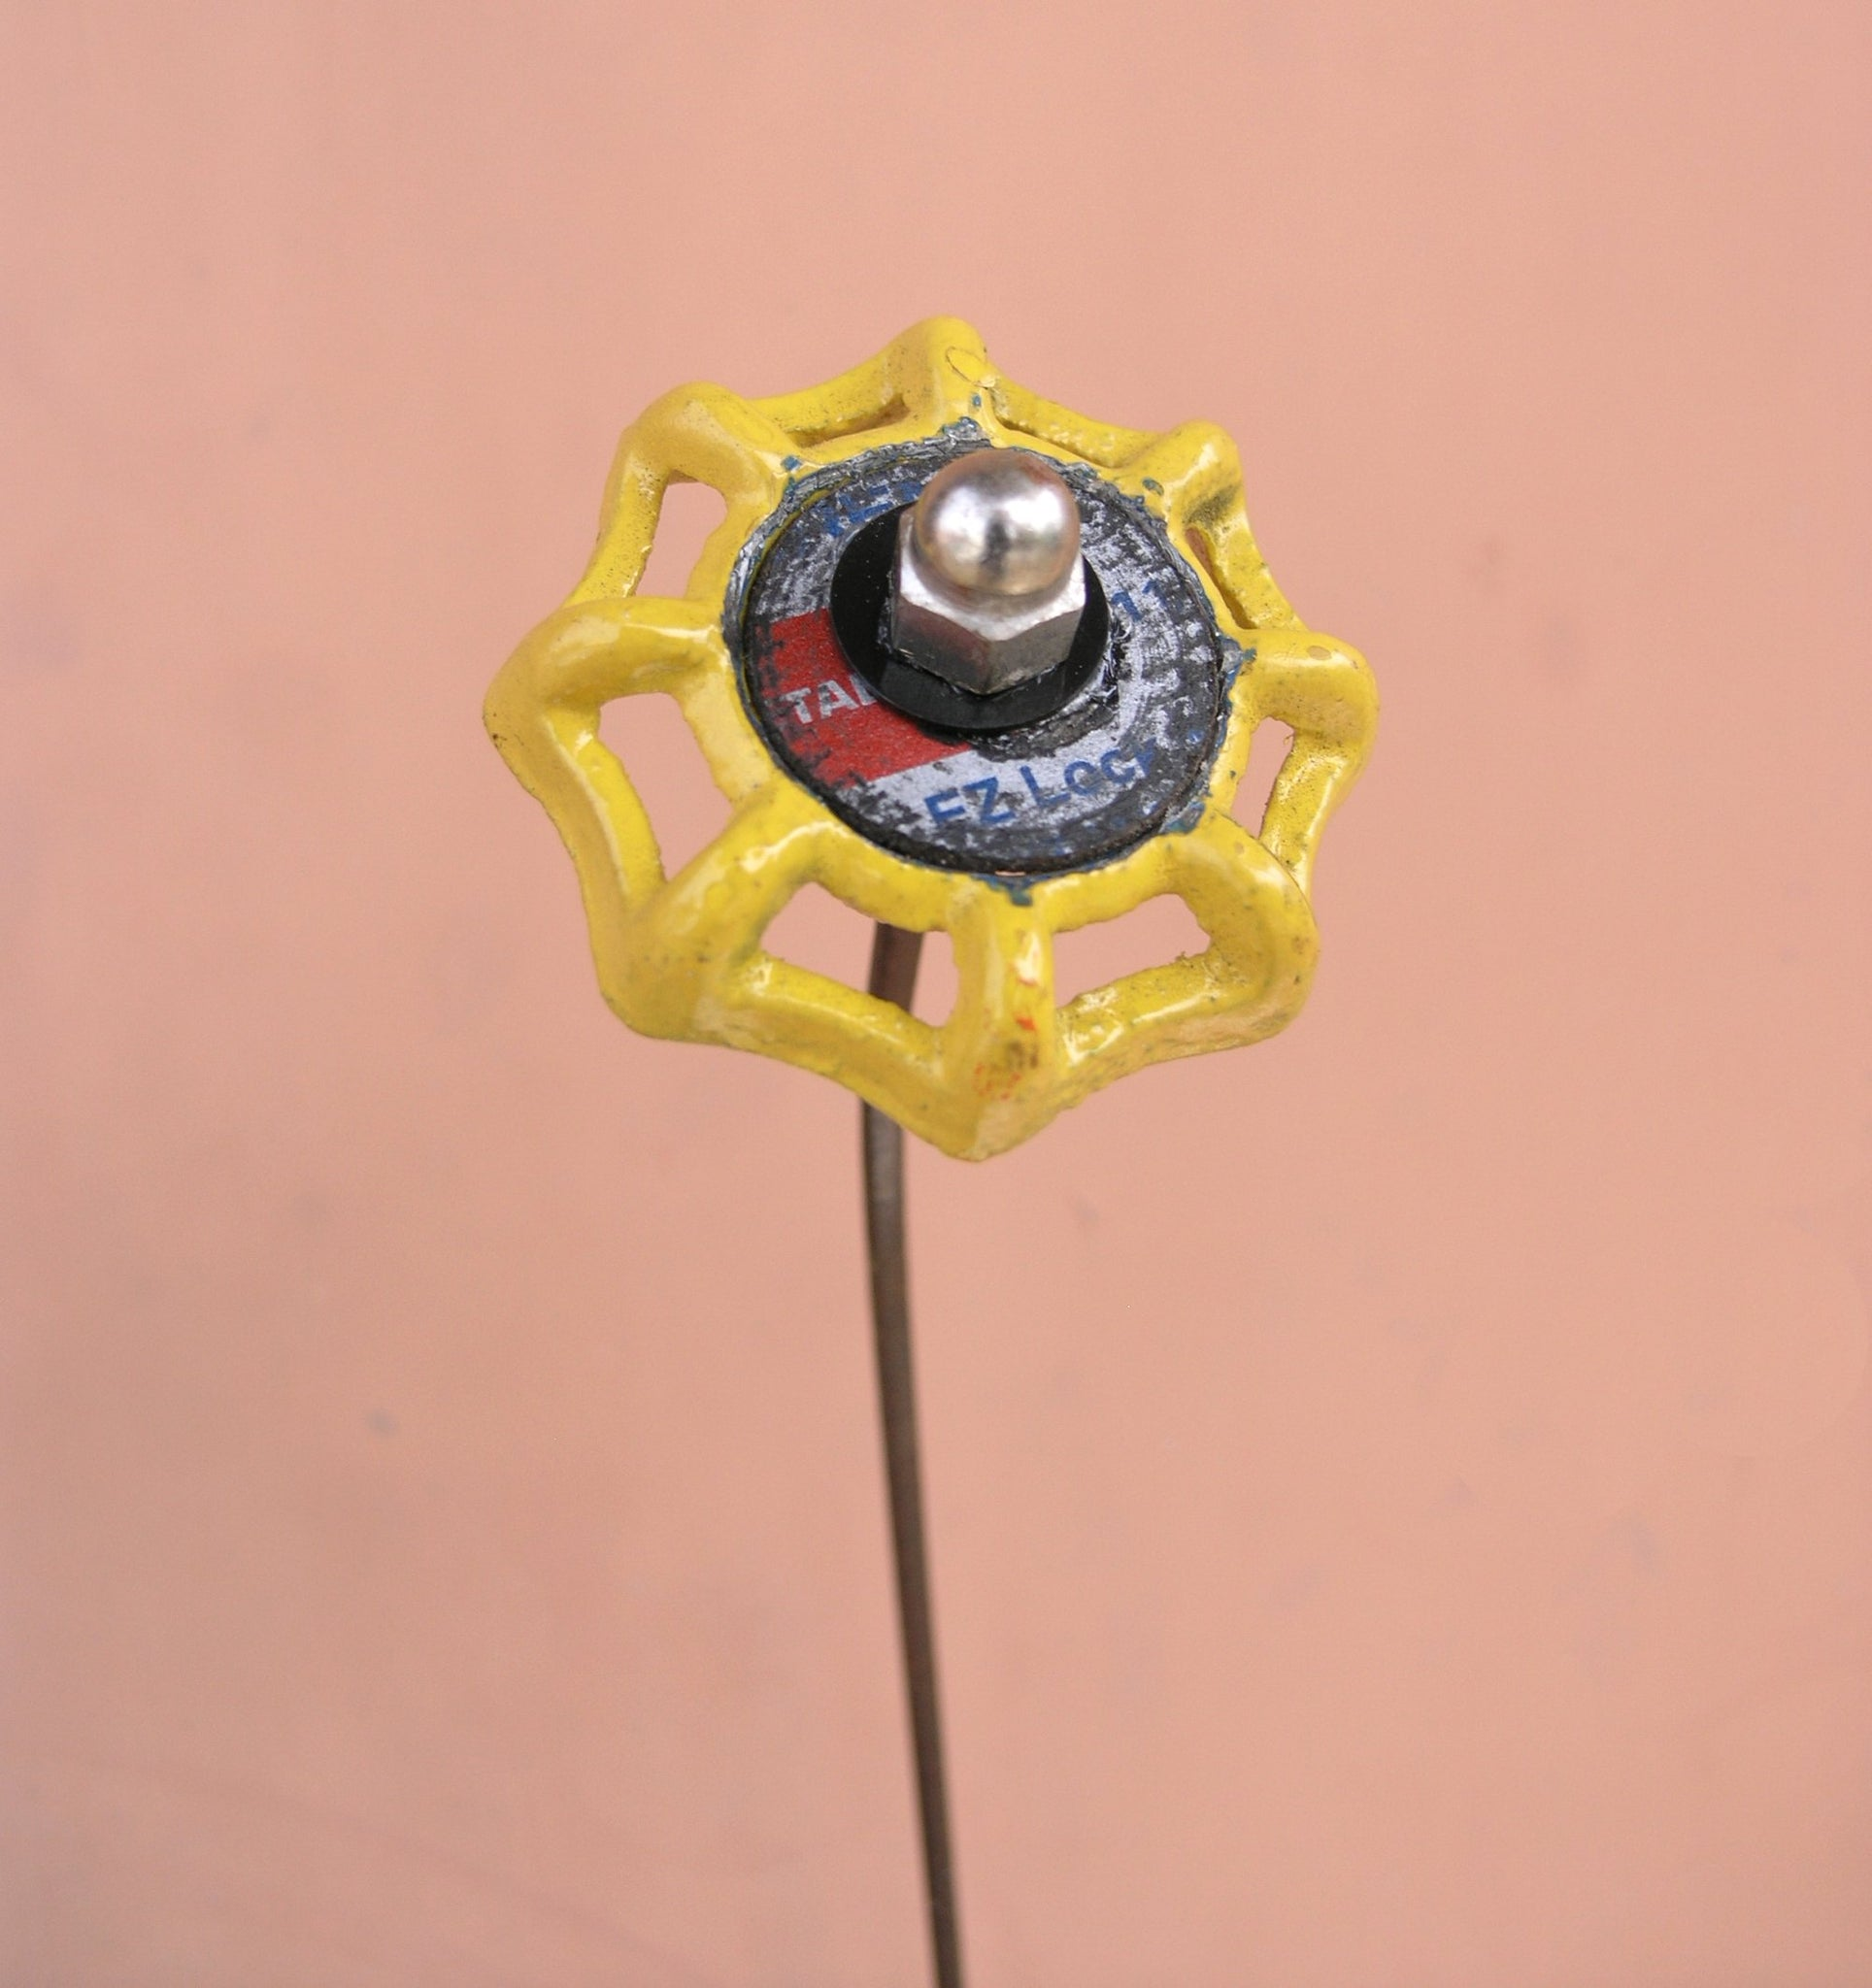 yellow faucet spigot handle flower